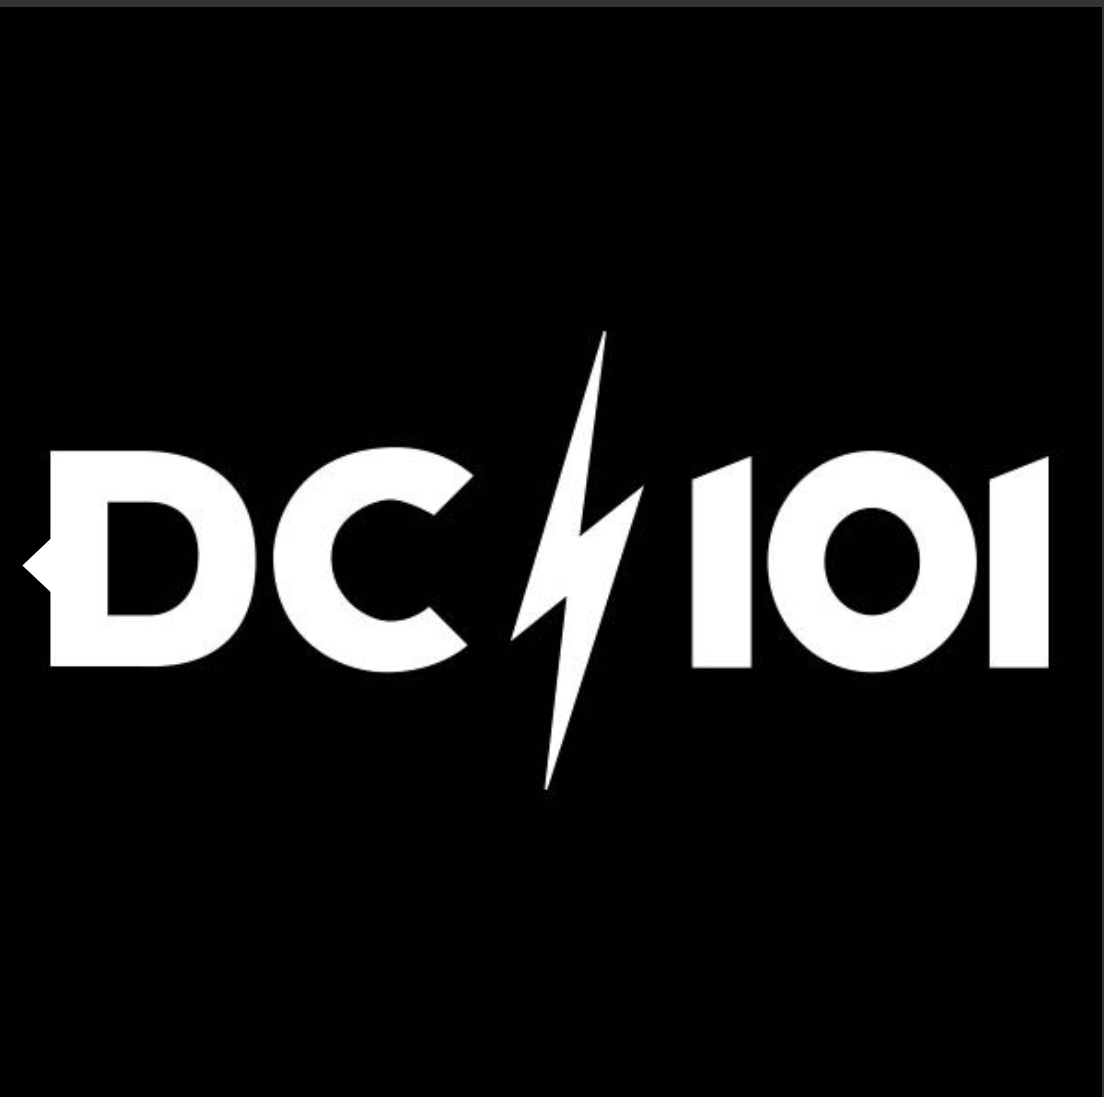 DC101 Logo black.jpeg